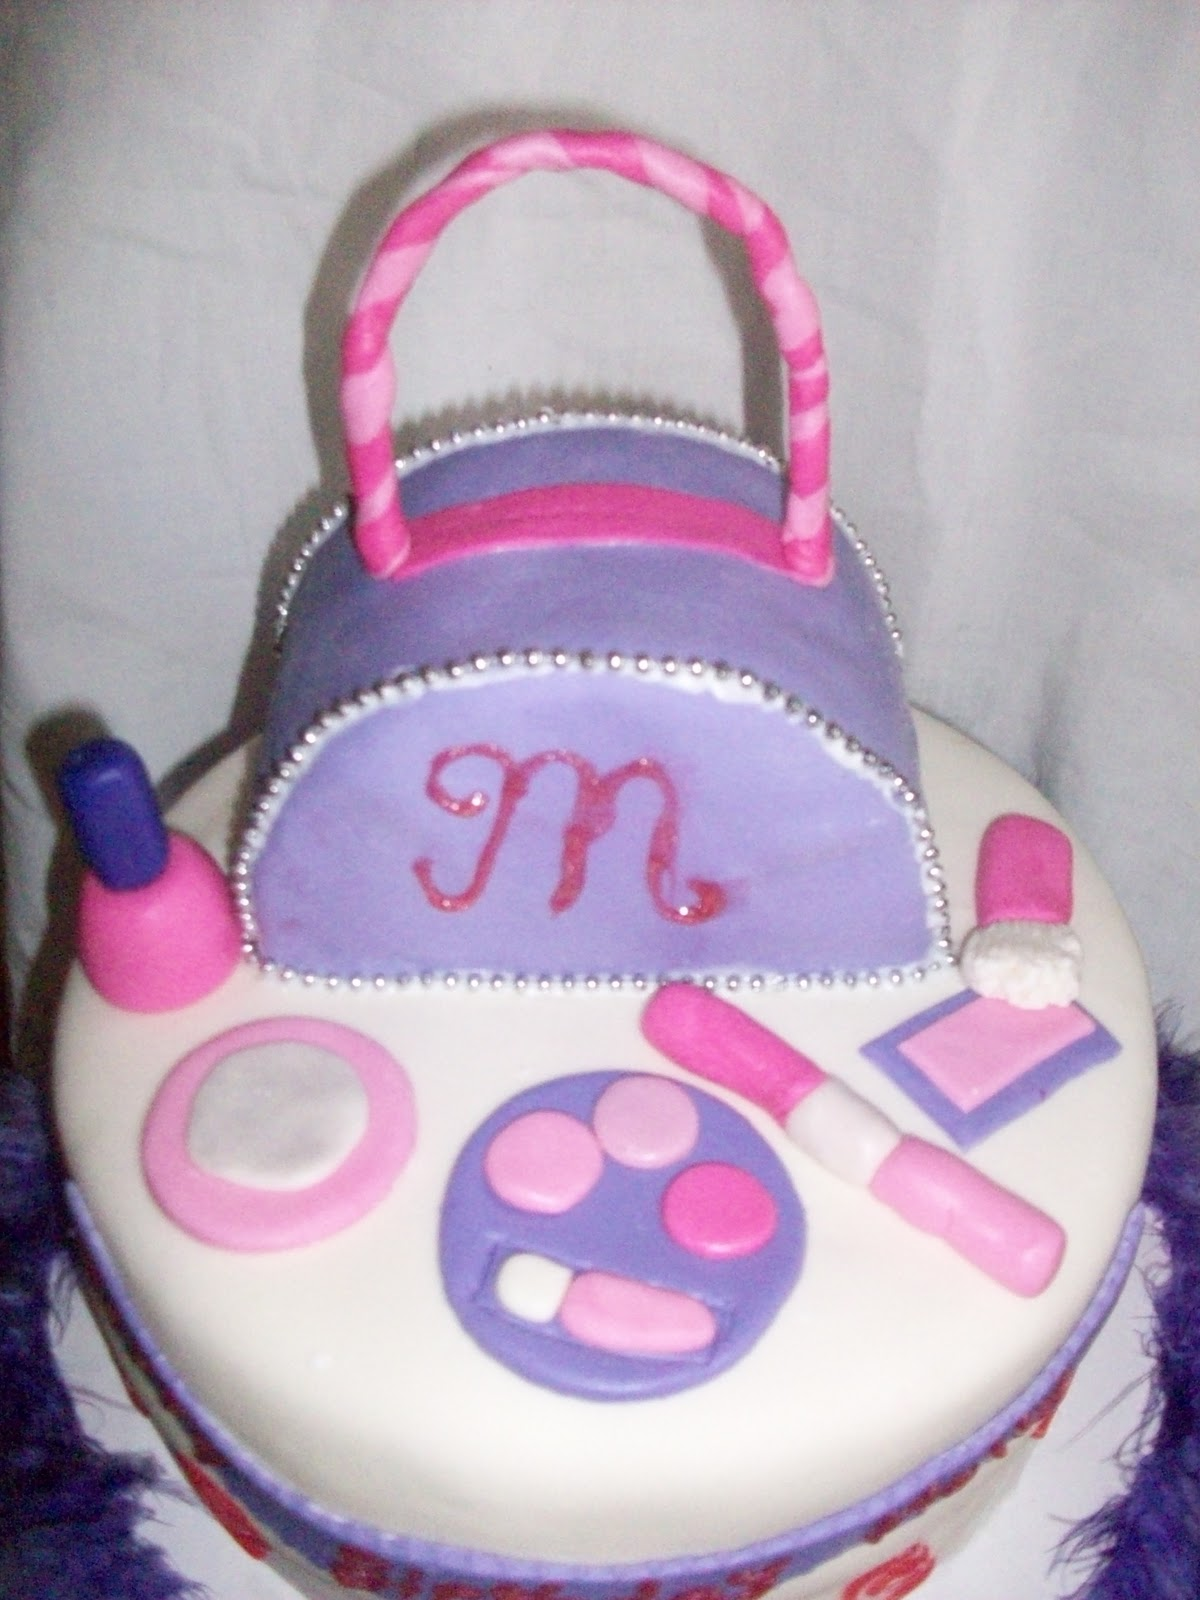 Aimee s Cakes: Little Girl Purse and Make Up Cake